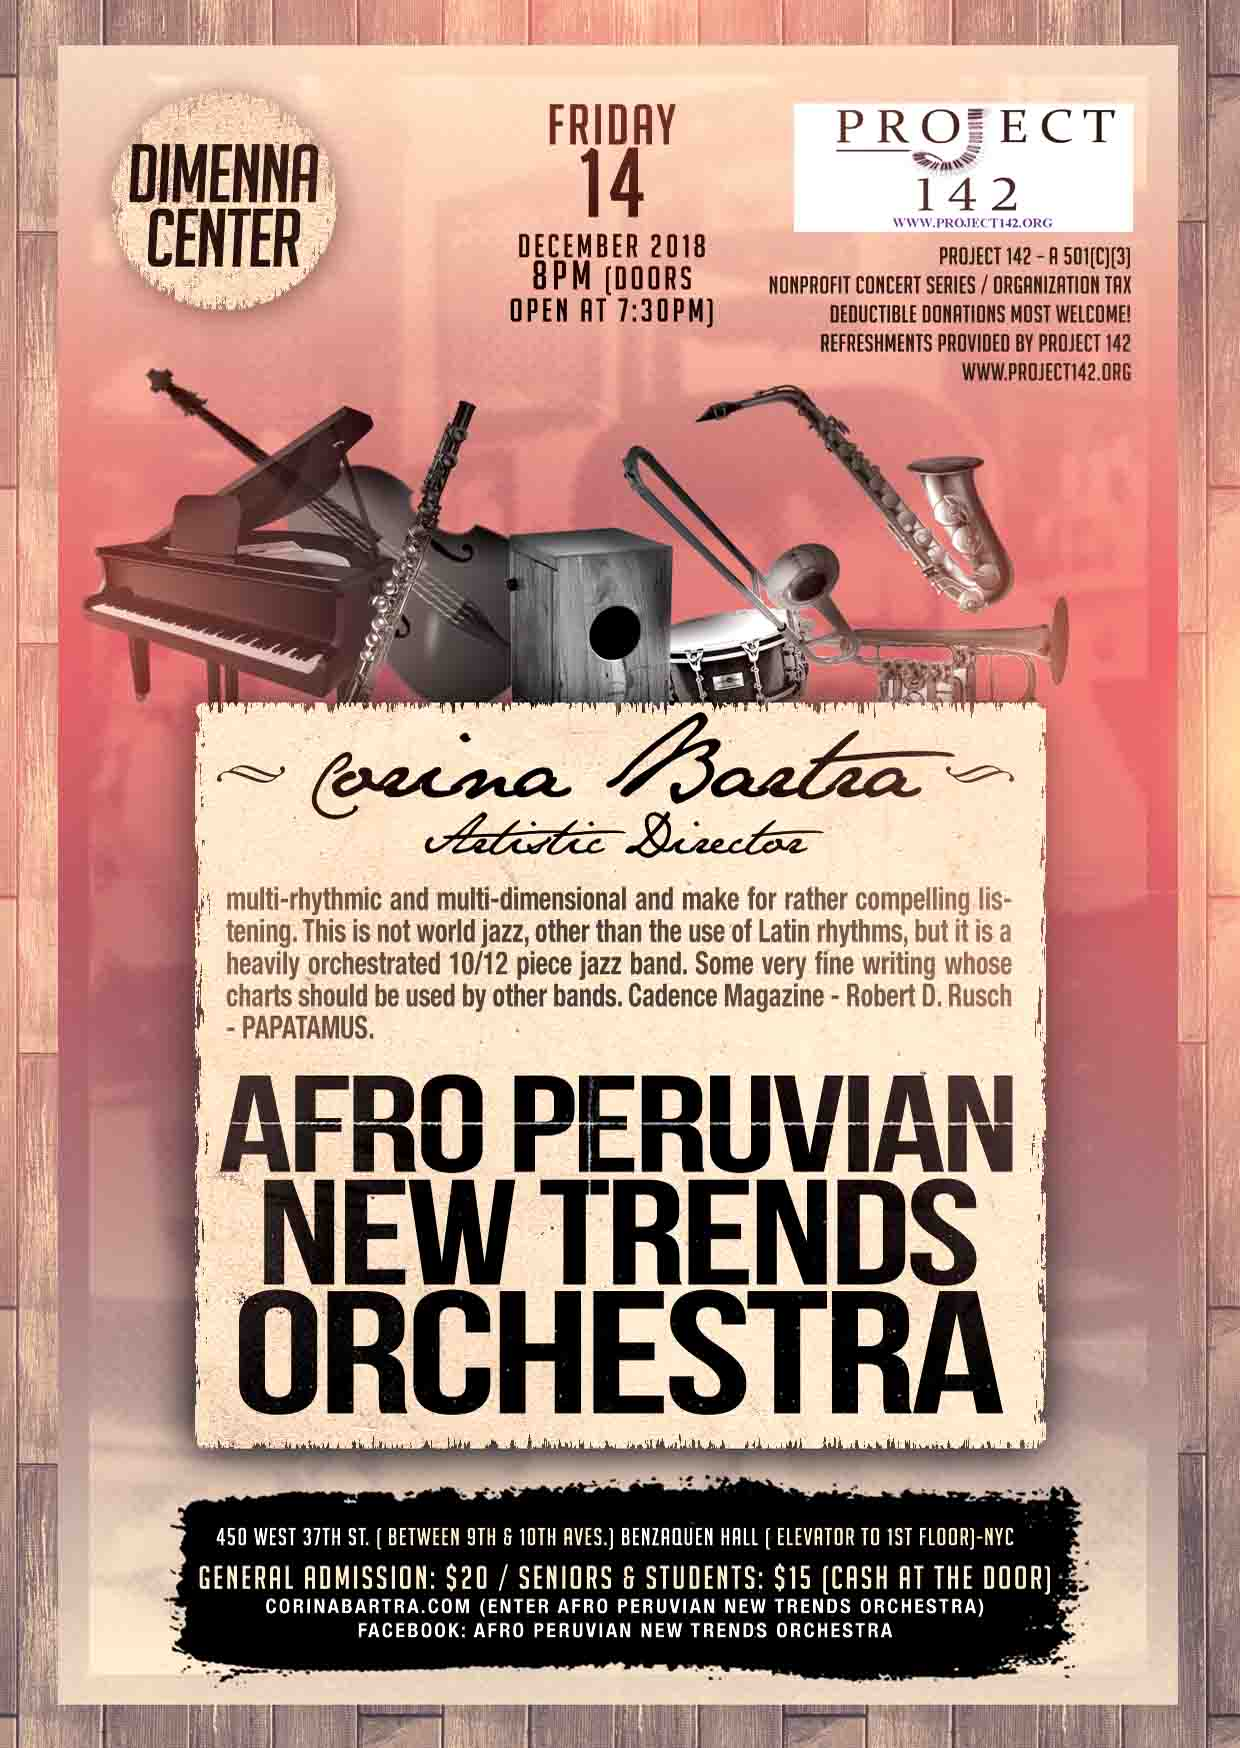 Corina Bartra and the Afro Peruvian New Trends Orchestra